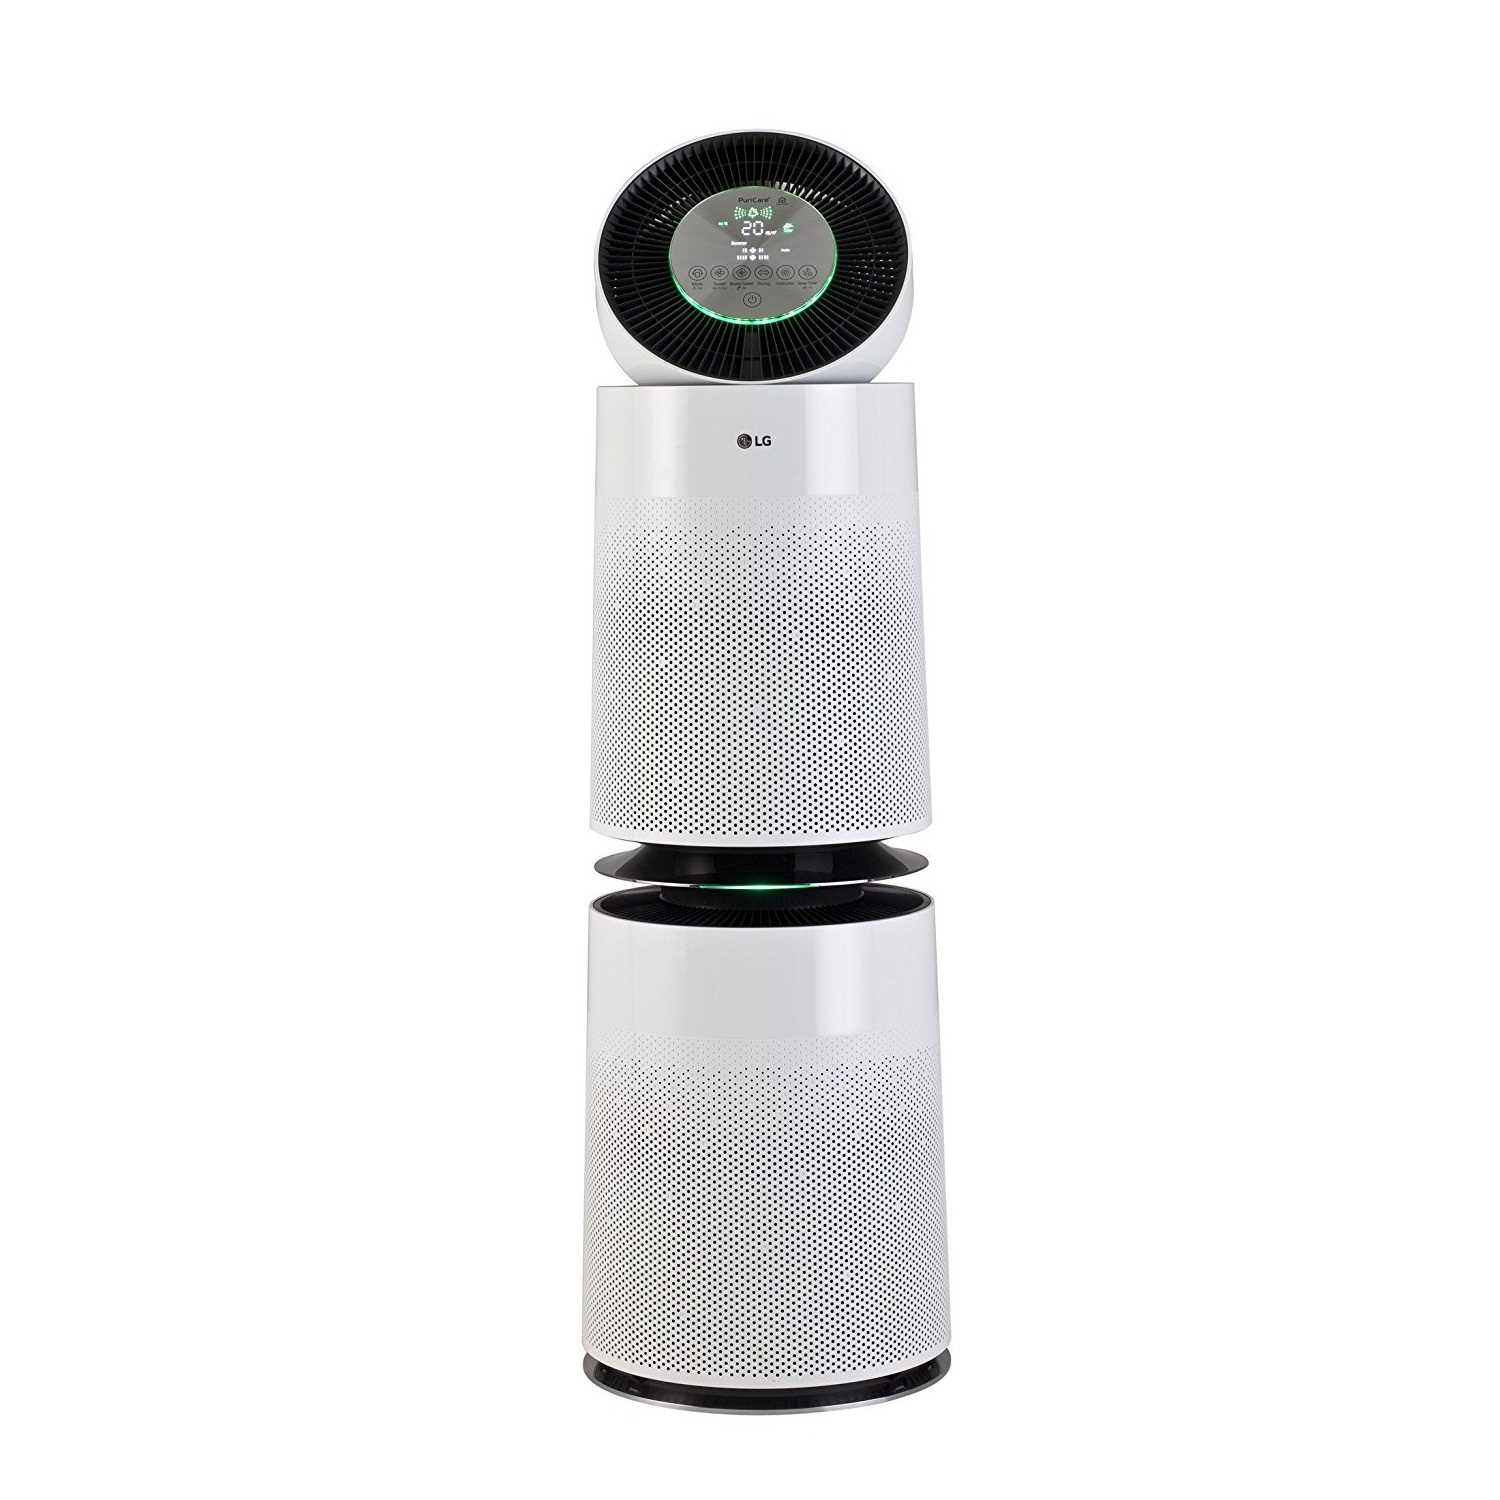 LG Puri Care AS95GDWT0 Room Air Purifier